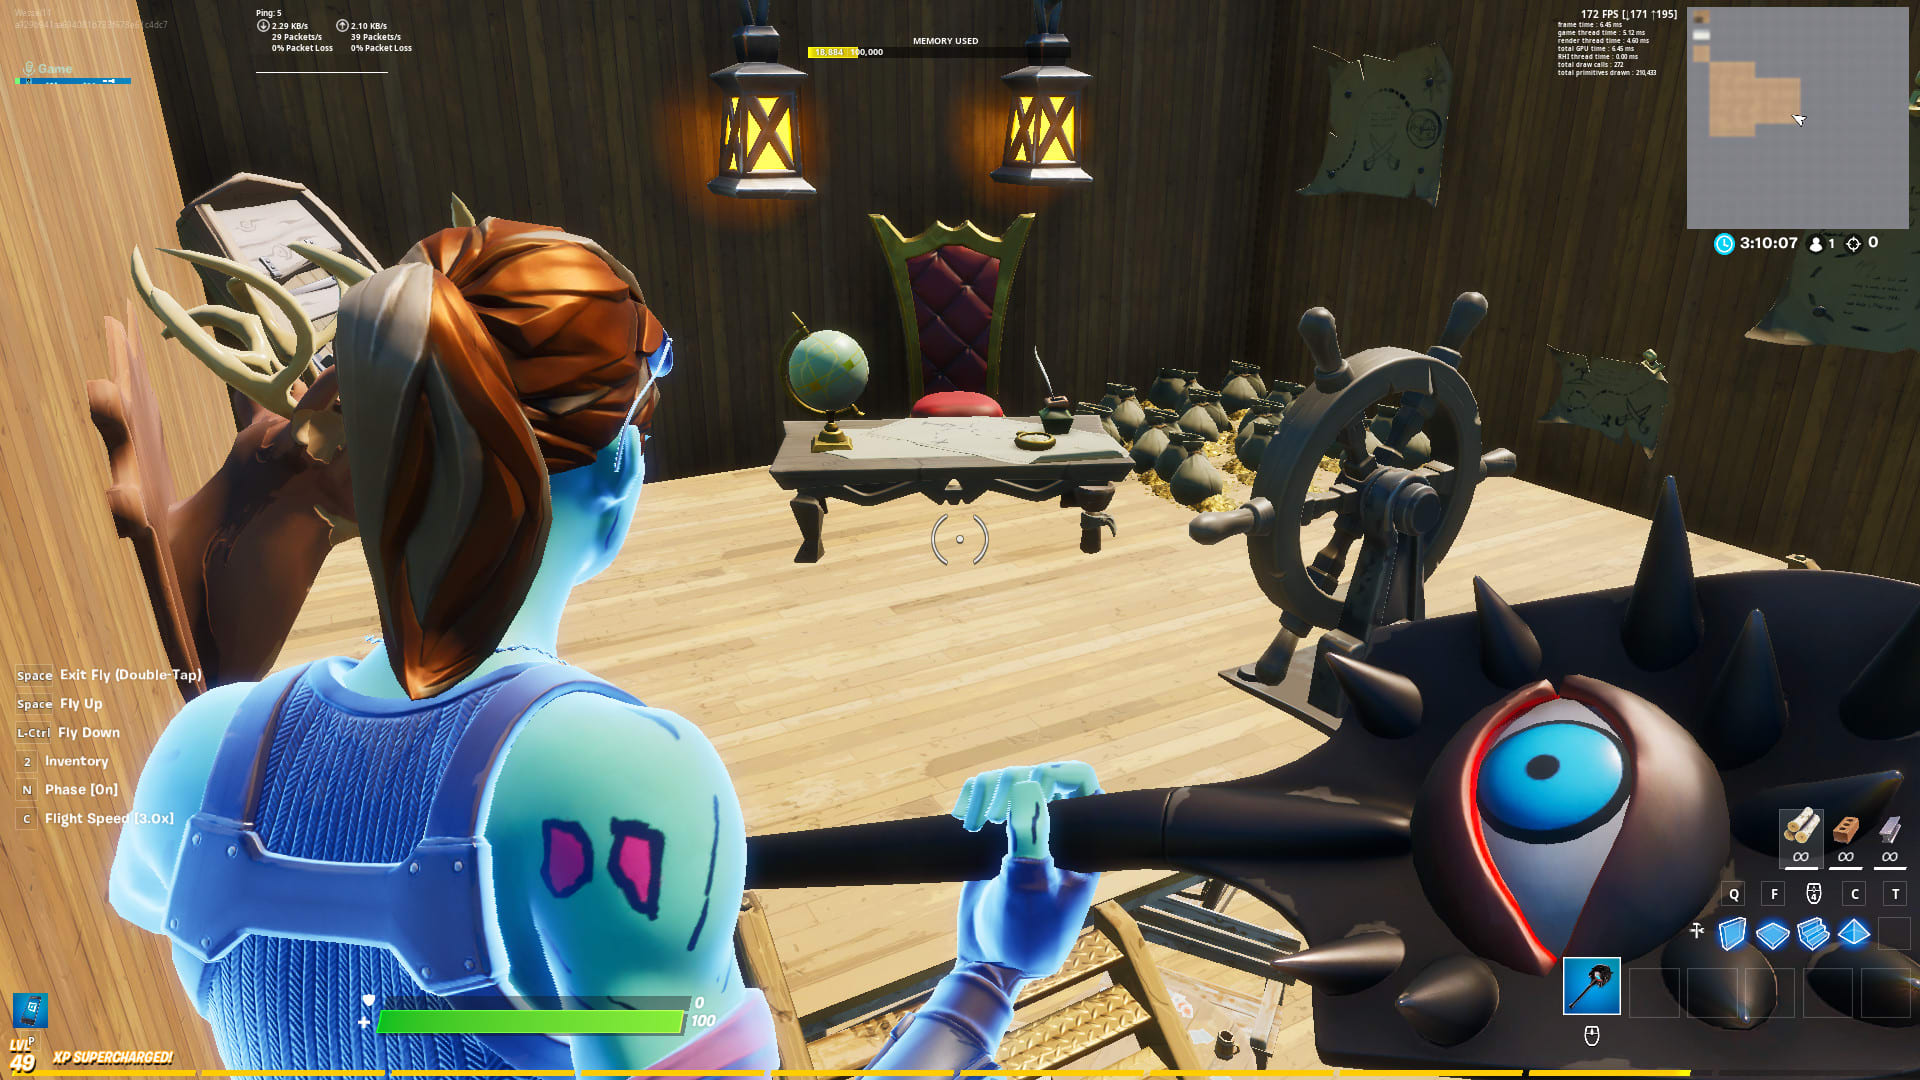 Map Pvp Fortnite Make U A Box Pvp Map At Fortnite By Wessel1233 Fiverr